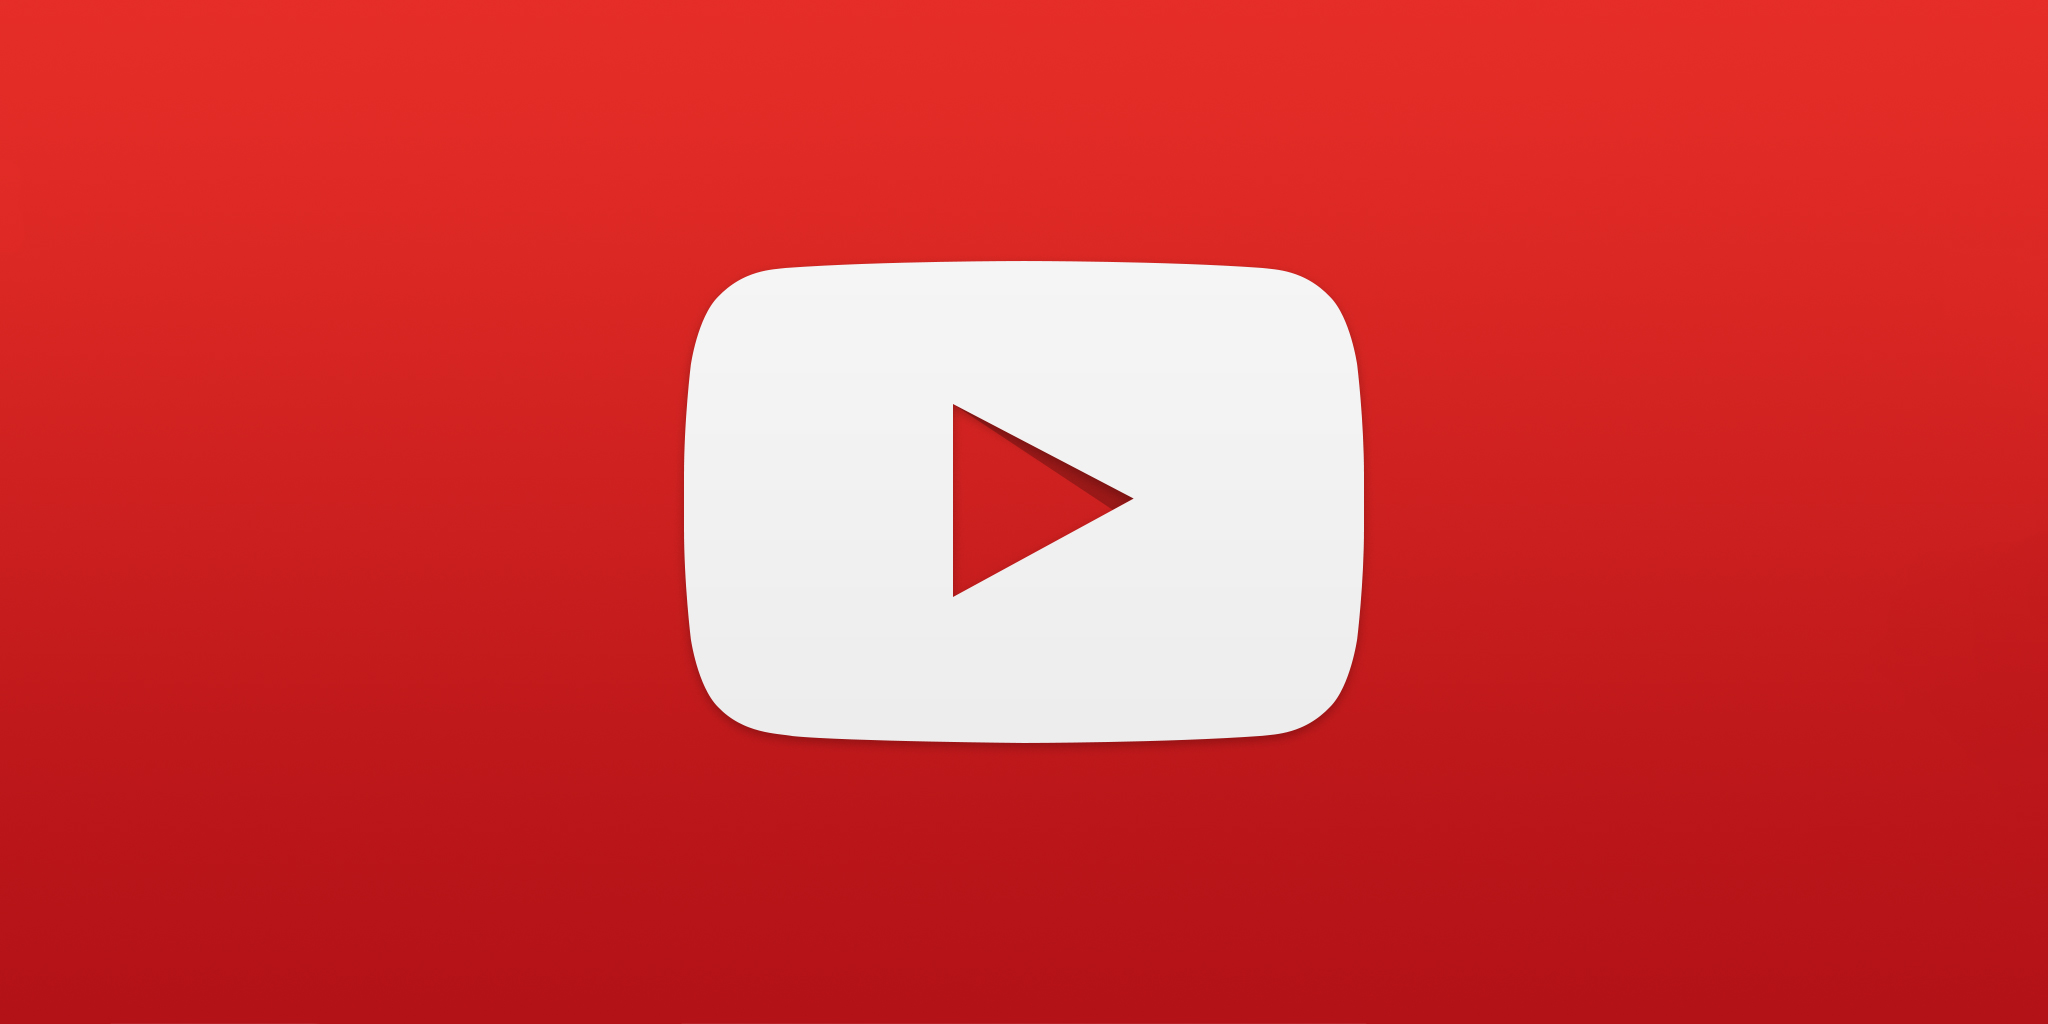 Subscribe to Jit's YouTube Channel for more awesome videos.